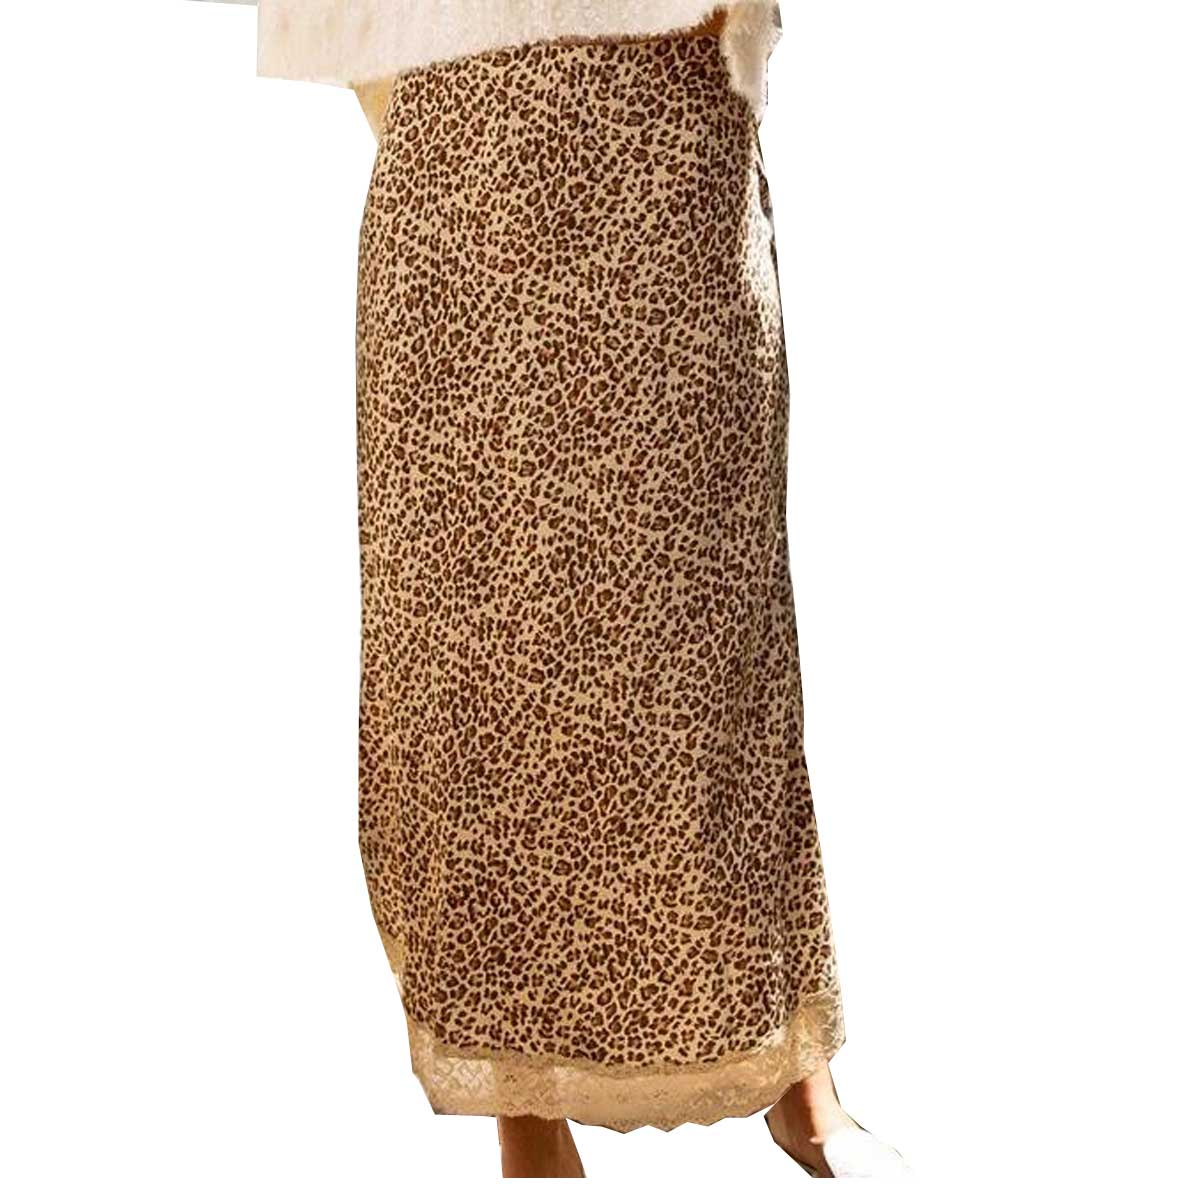 POL Clothing Women's Skirt - Gold Leopard